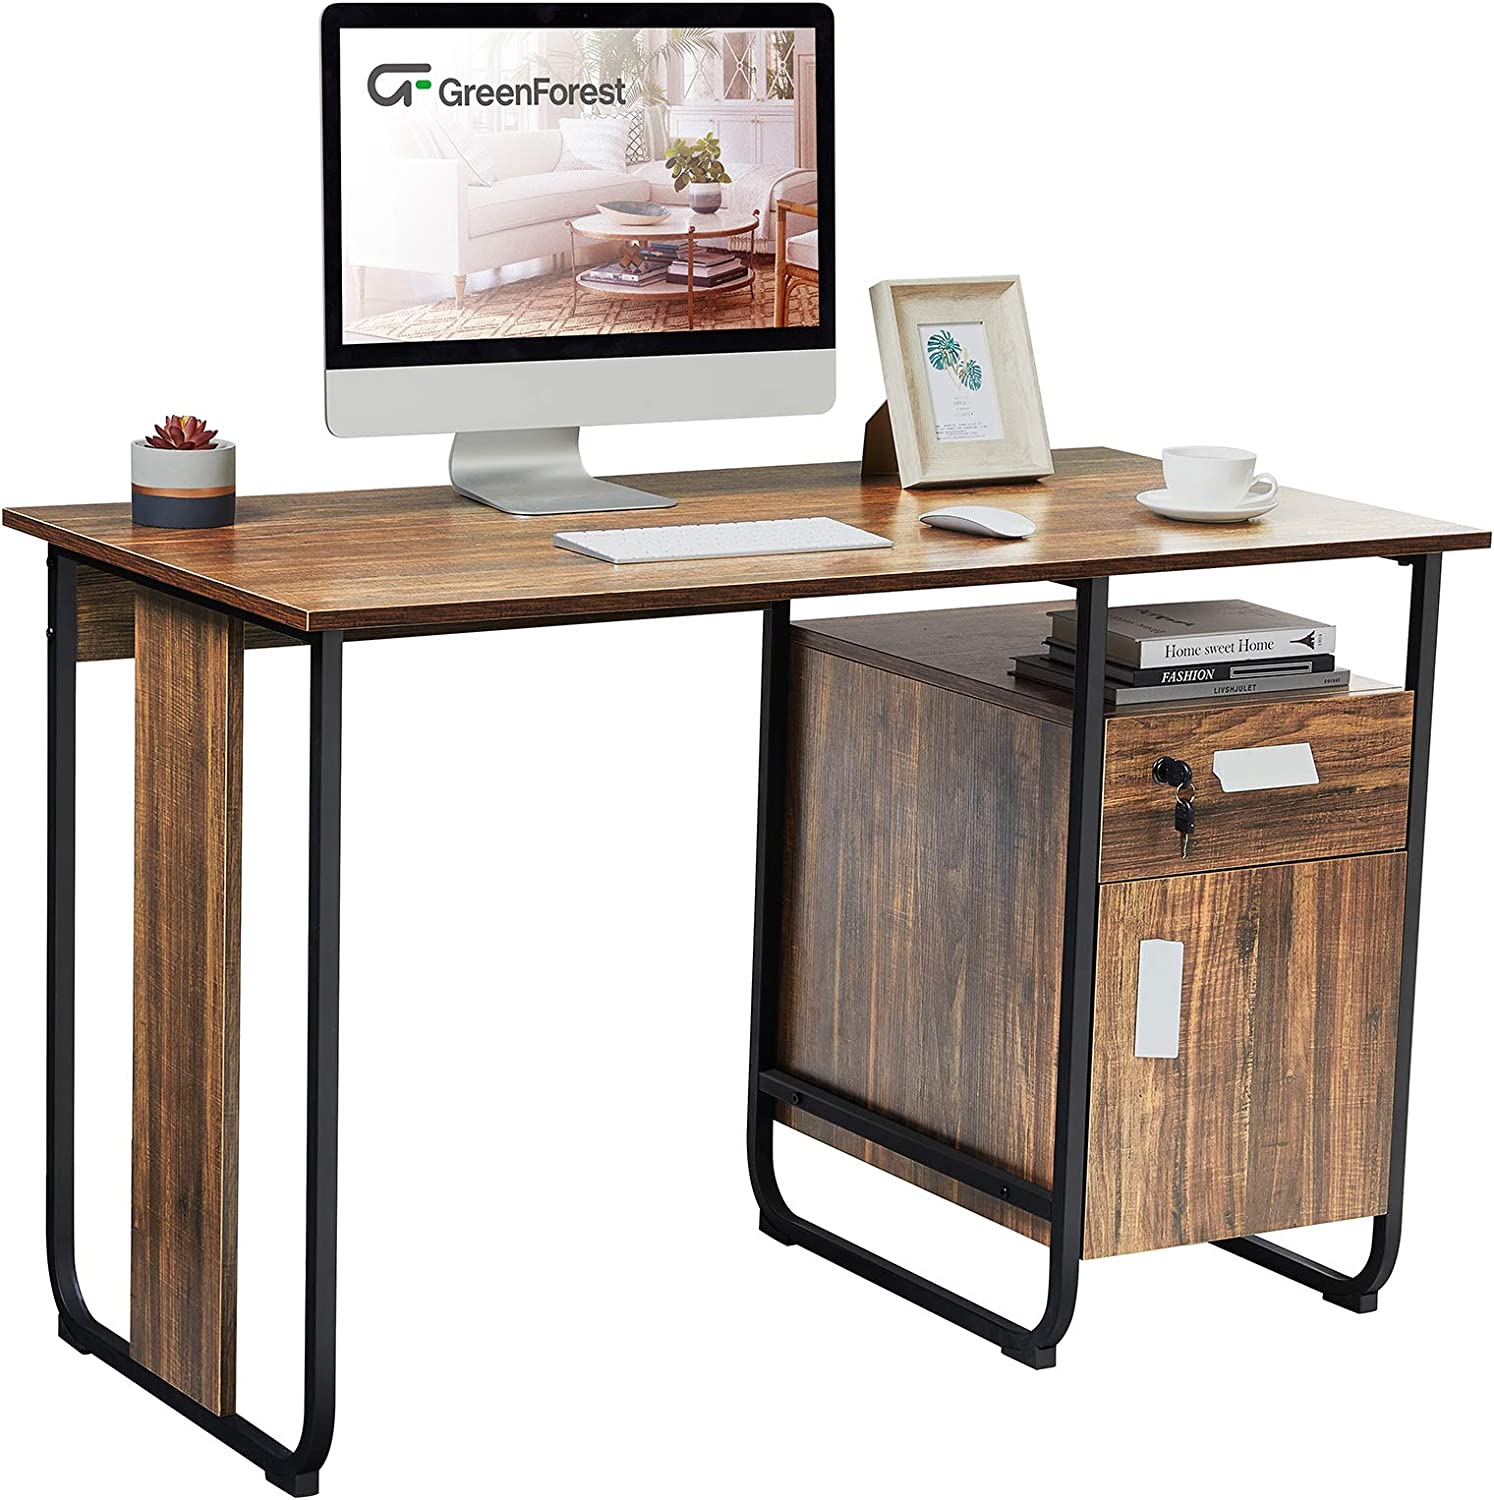 GreenForest Writing Desk with Drawer and Cabinet 47 inch for Student, Industrial Style Home Office Computer Gaming Study PC Laptop Desk